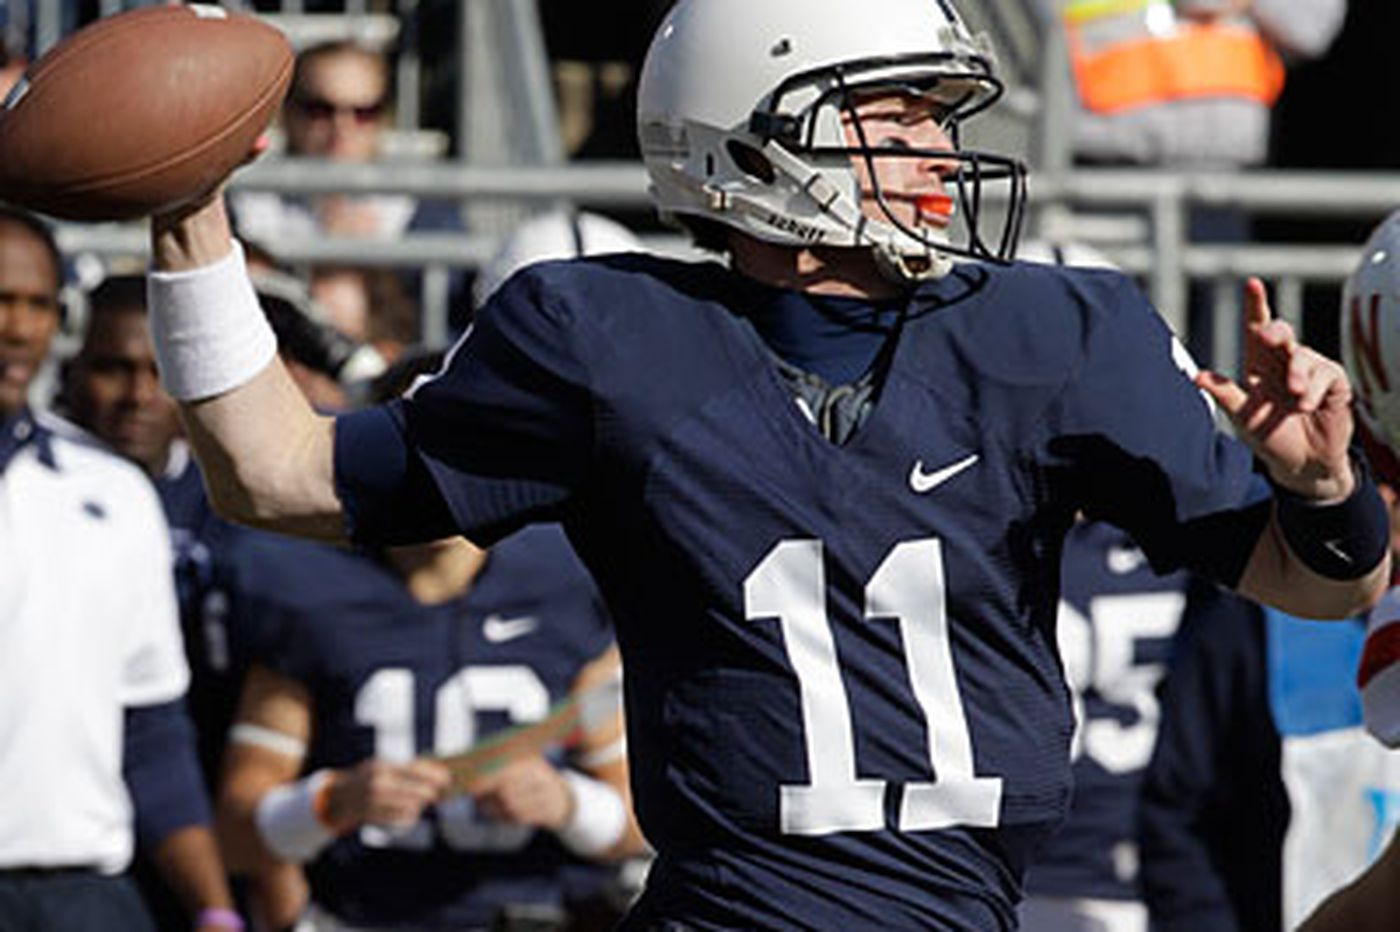 Drake-McGloin fight under review at Penn State